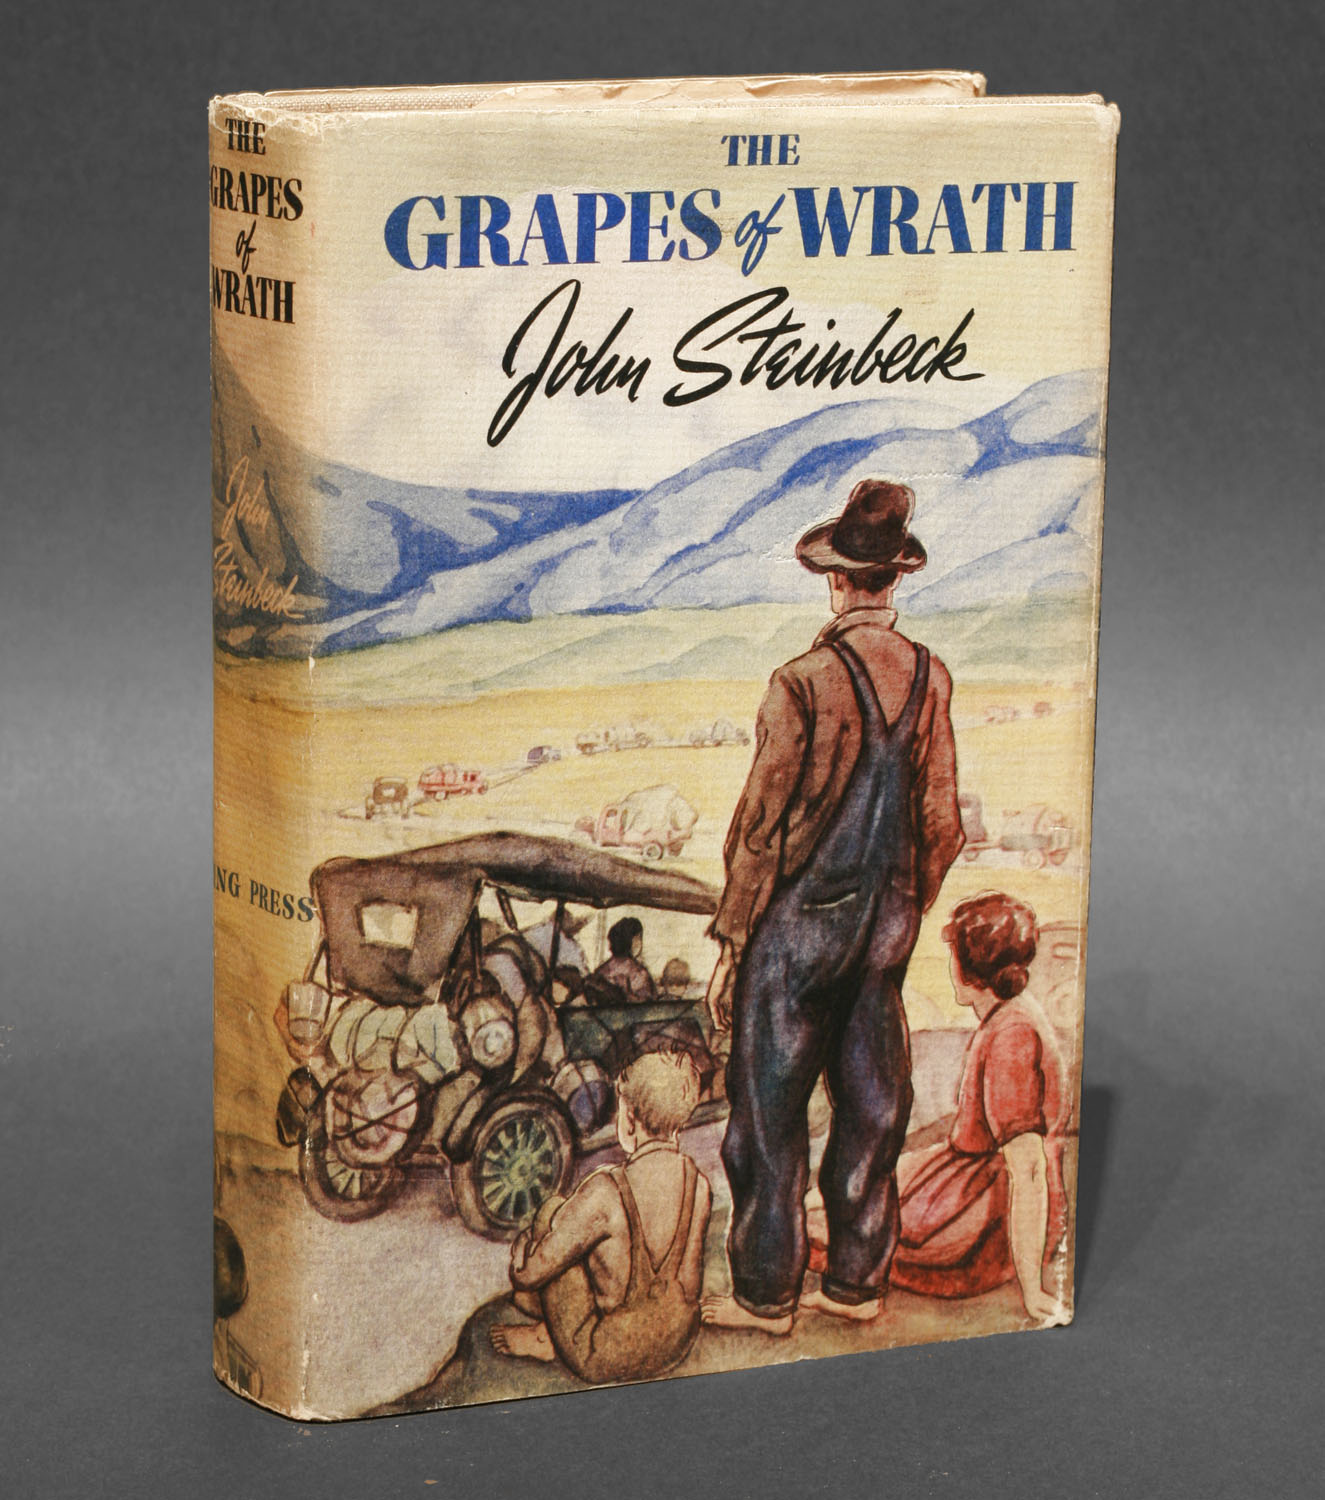 the theme of kindness in the grapes of wrath a novel by john steinbeck The grapes of wrathusa, 1940 director: john fordproduction: twentieth   ford, nichols, fonda and the supporting cast translated steinbeck's novel to the  screen with  of leaning telephone poles, suggests the themes of society  confronted by an ecological  one has to eat even if it means betraying one's  own kind.